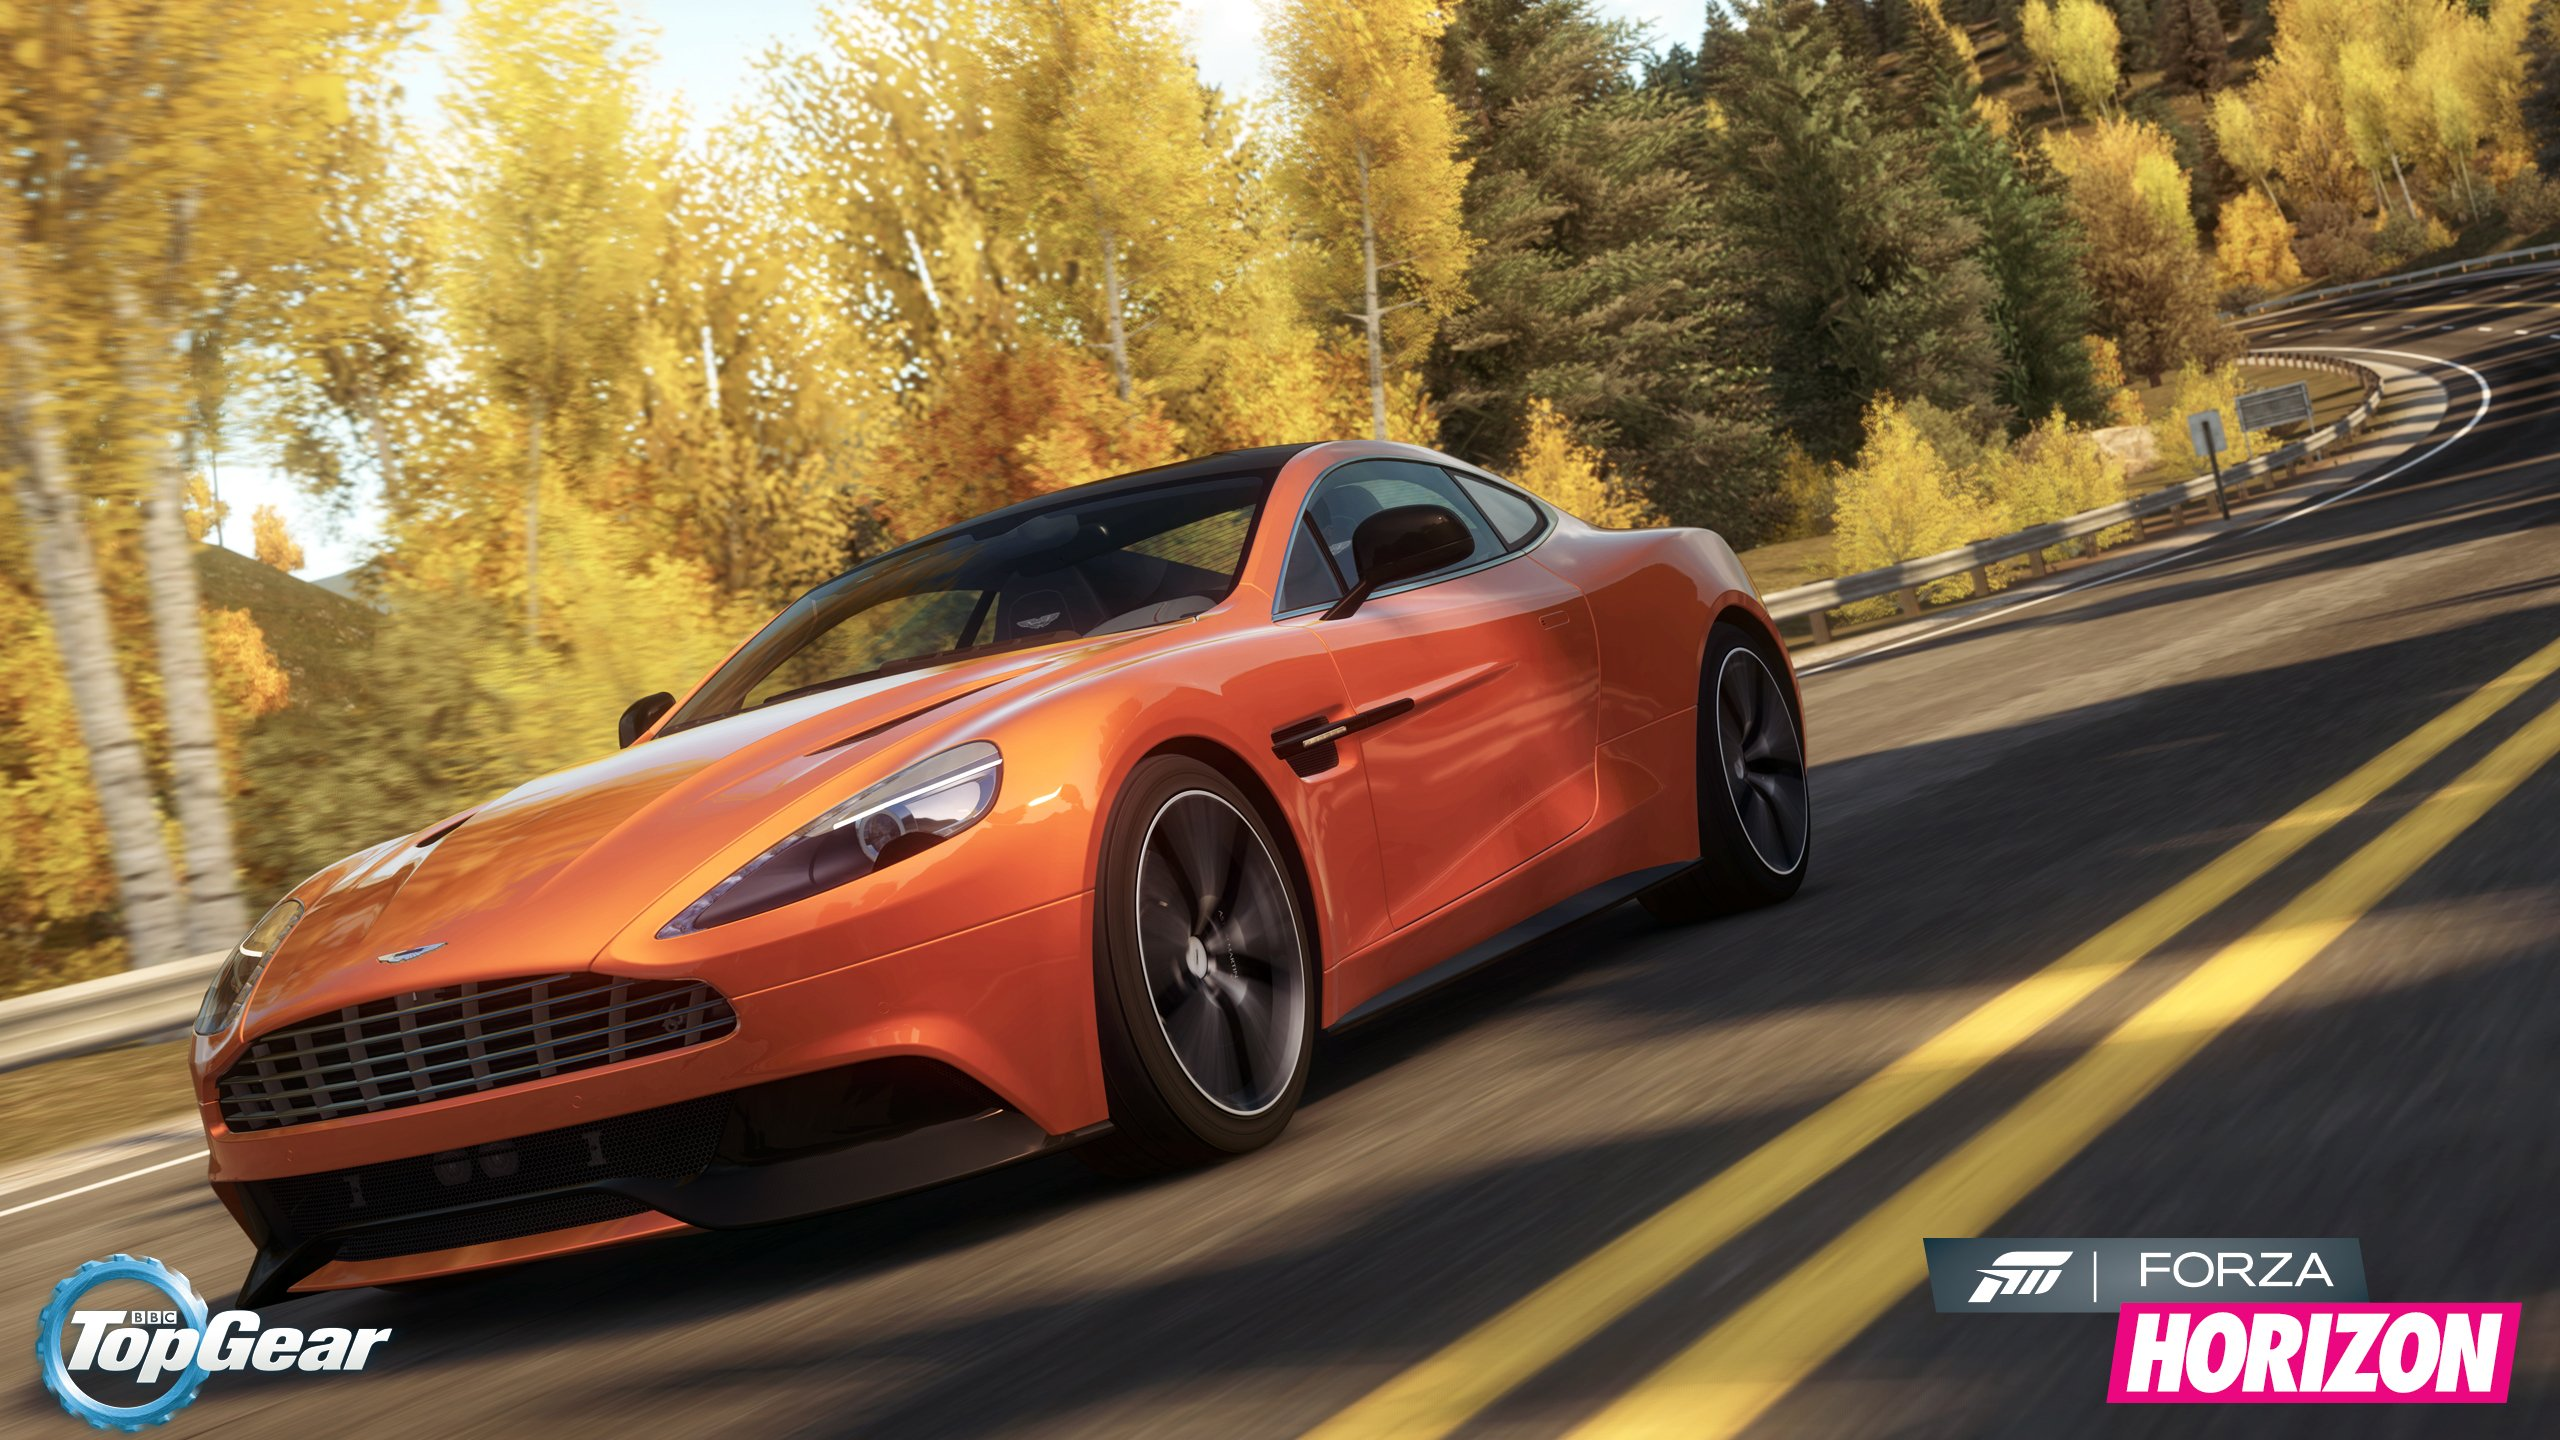 forza horizon april top gear car pack arriving tuesday. Black Bedroom Furniture Sets. Home Design Ideas